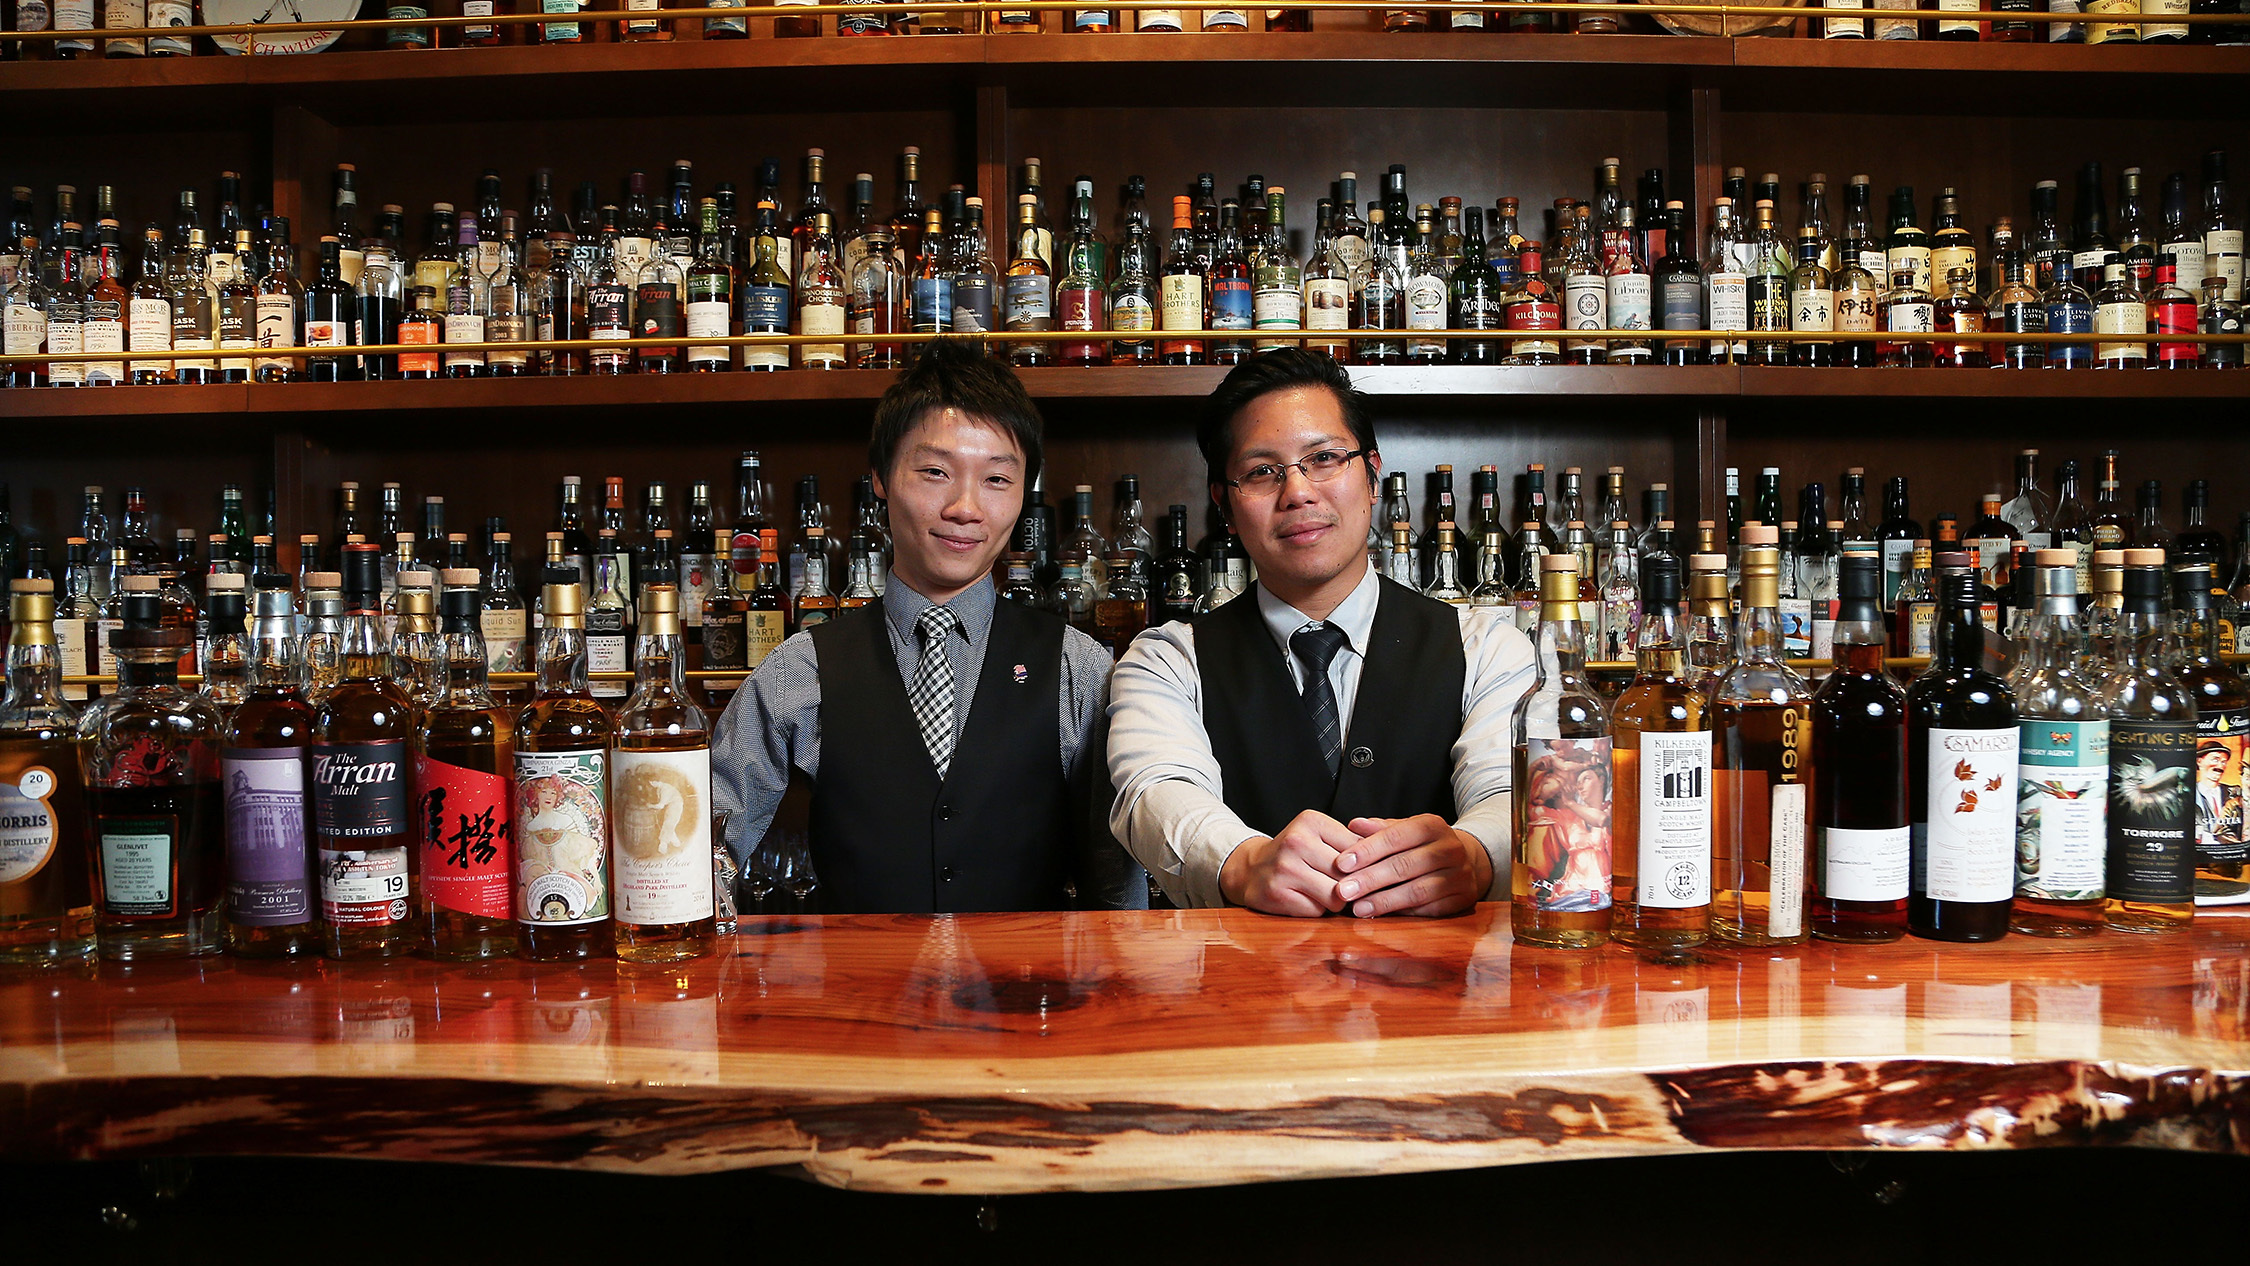 Bartenders at The Elysian